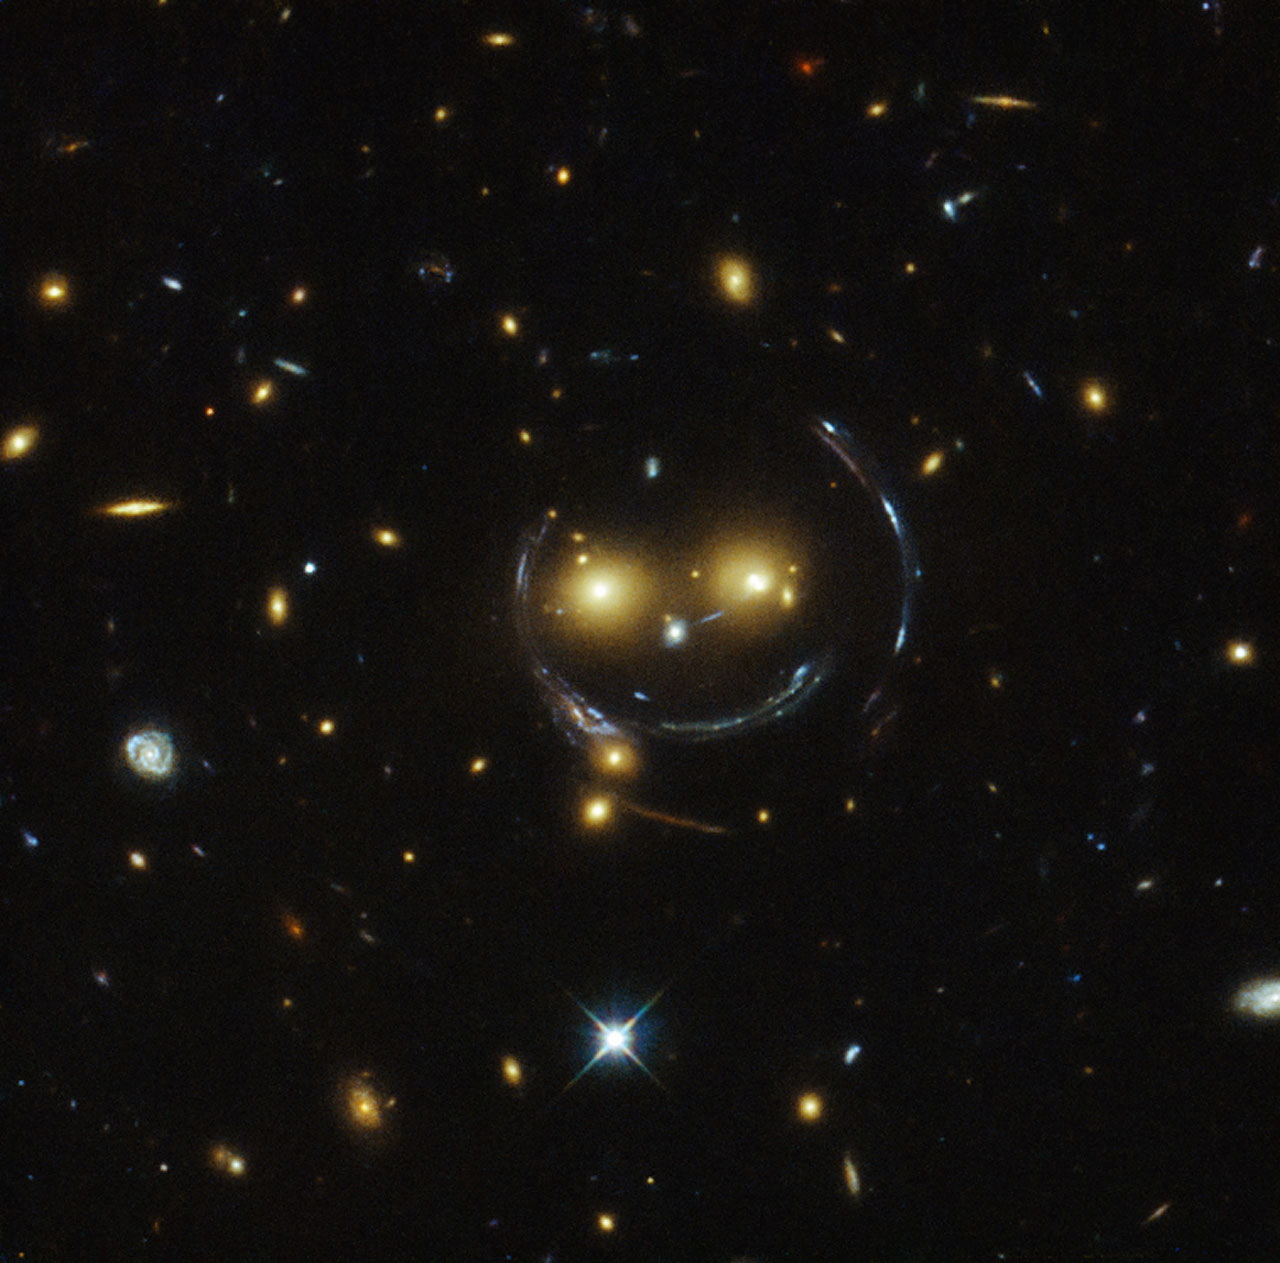 Say Cheese! Hubble Telescope Sees Cosmic Smiley Face in Space